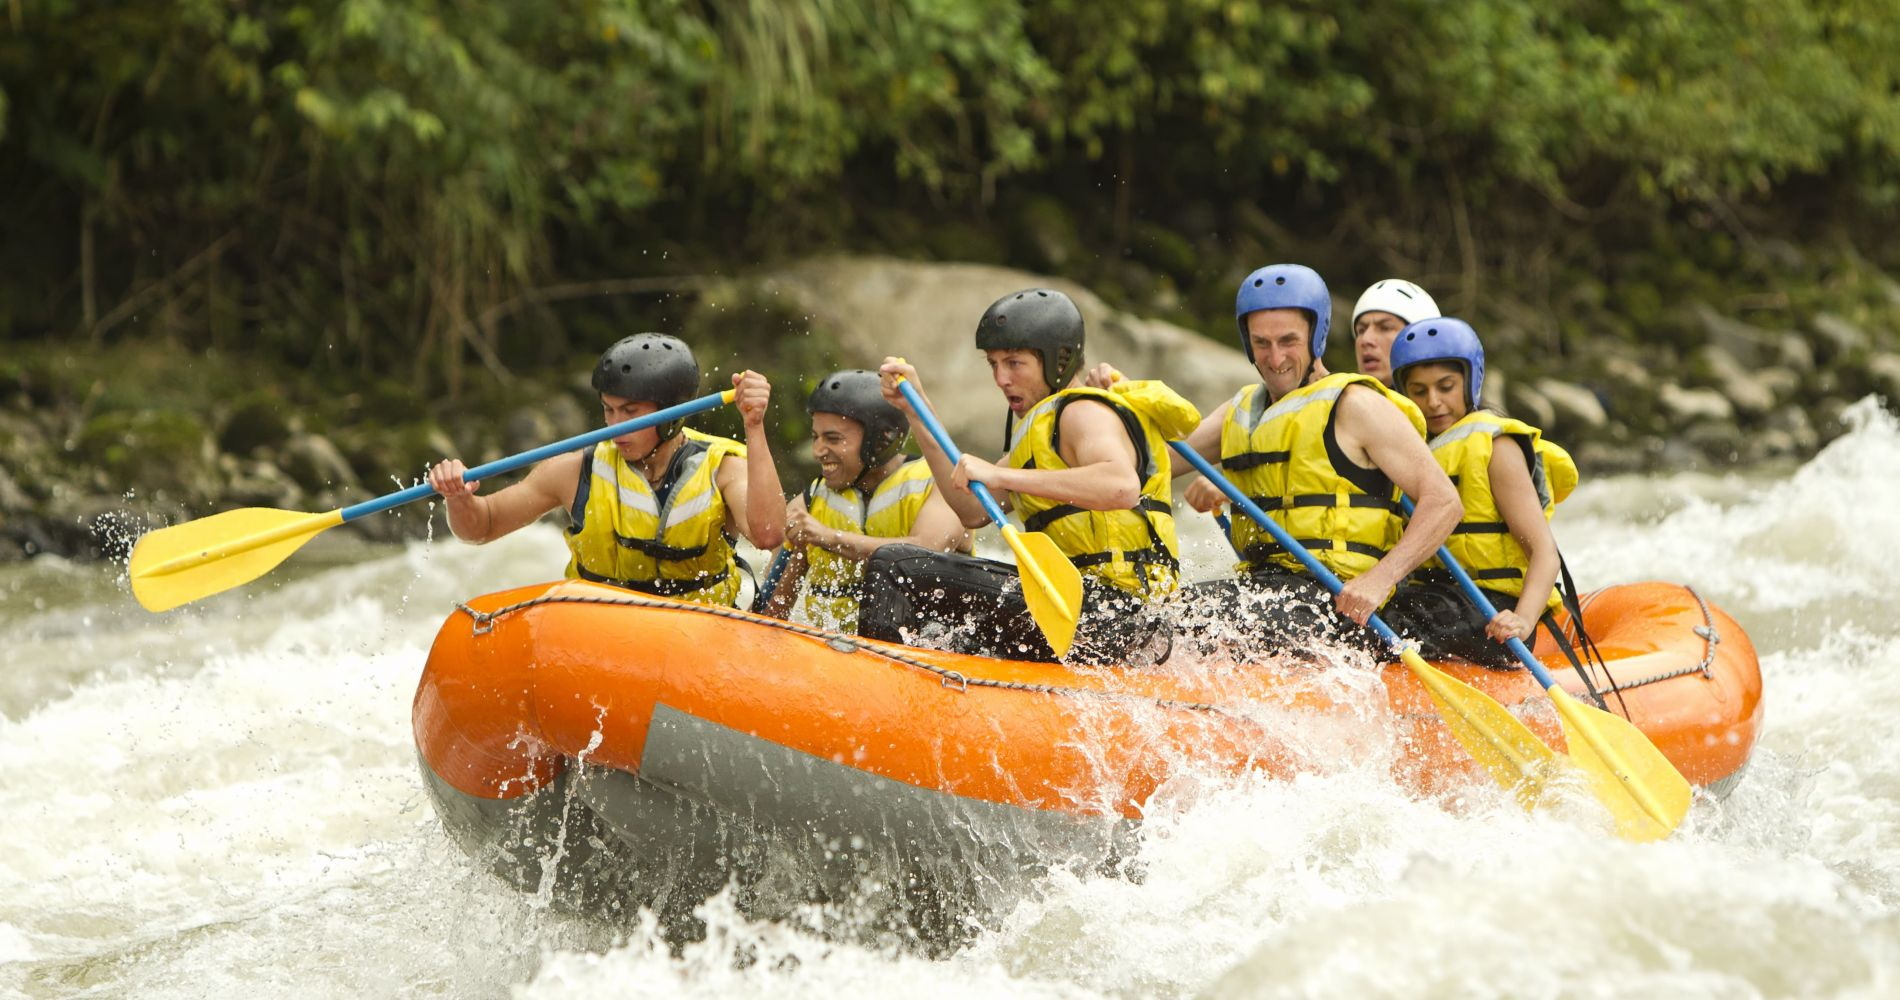 Half-Day Fraser River Rafting in Canada for Two